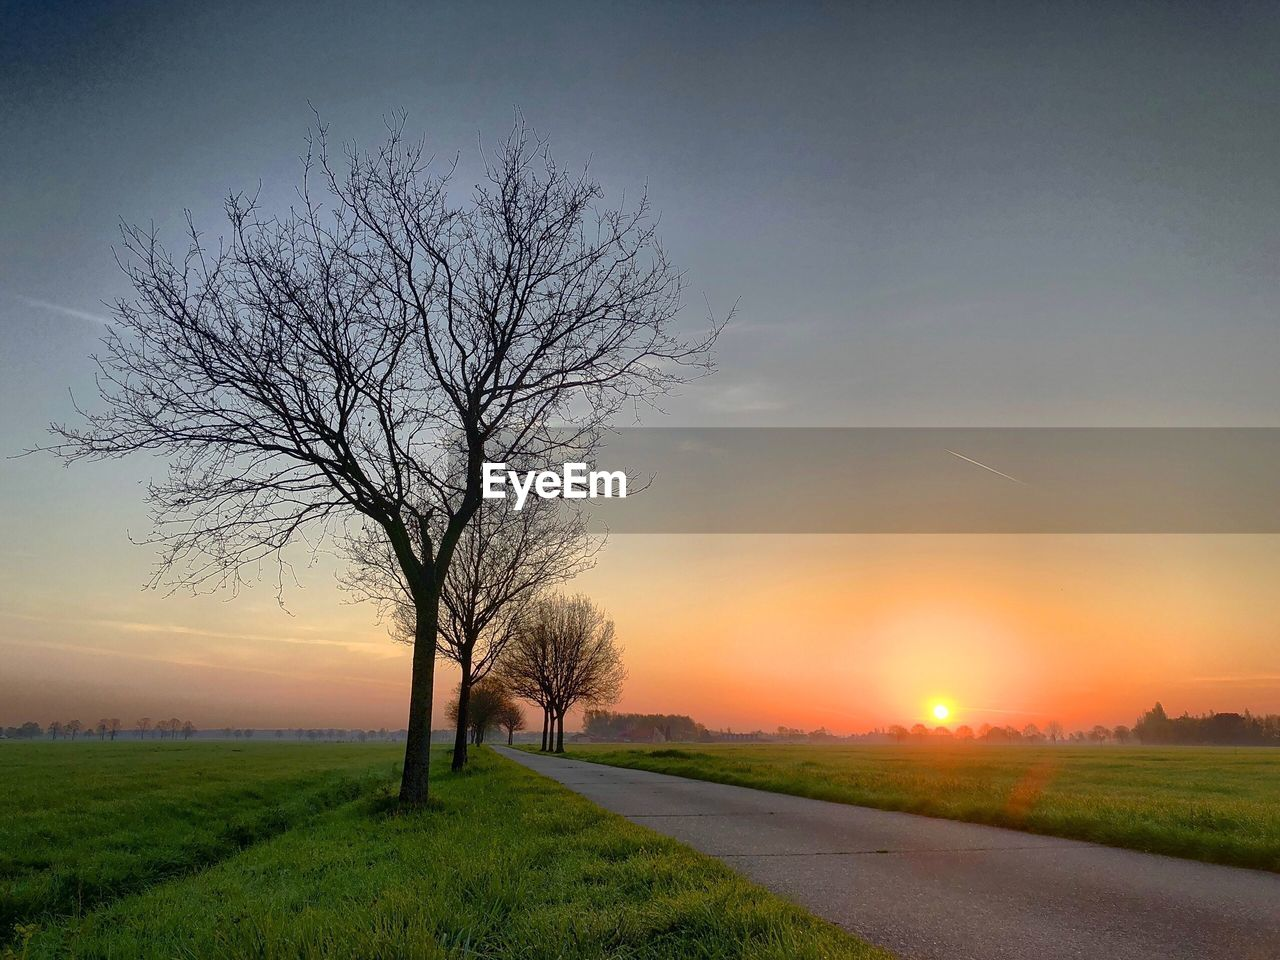 sky, sunset, tree, plant, bare tree, beauty in nature, landscape, scenics - nature, field, tranquil scene, tranquility, environment, no people, orange color, nature, road, sun, grass, branch, land, outdoors